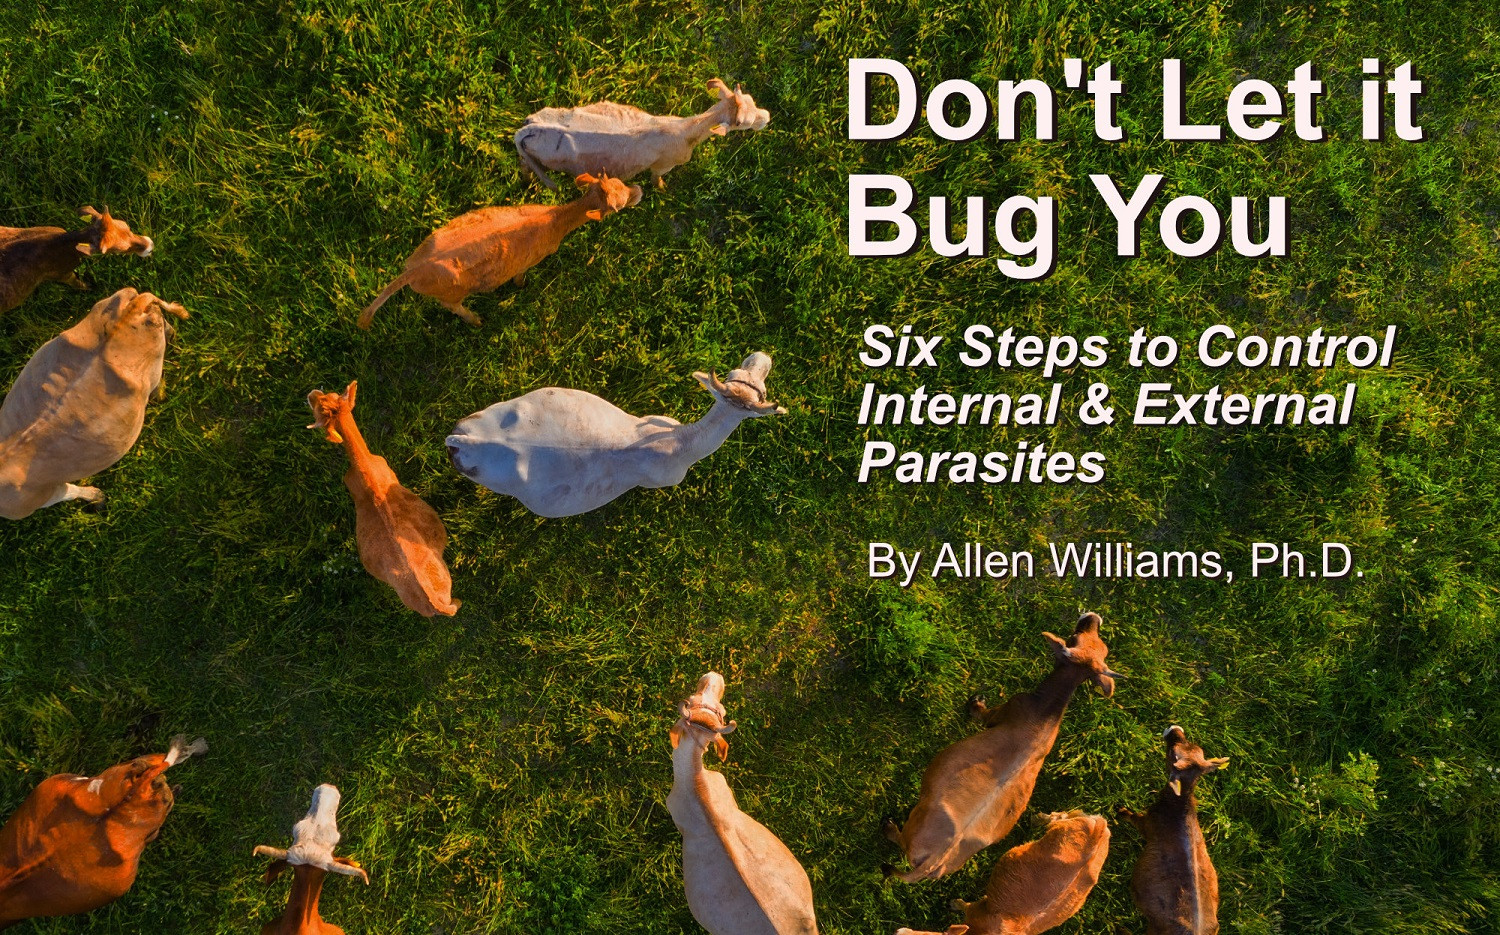 Don't Let it Bug You  Six Steps to Control Internal & External Parasites